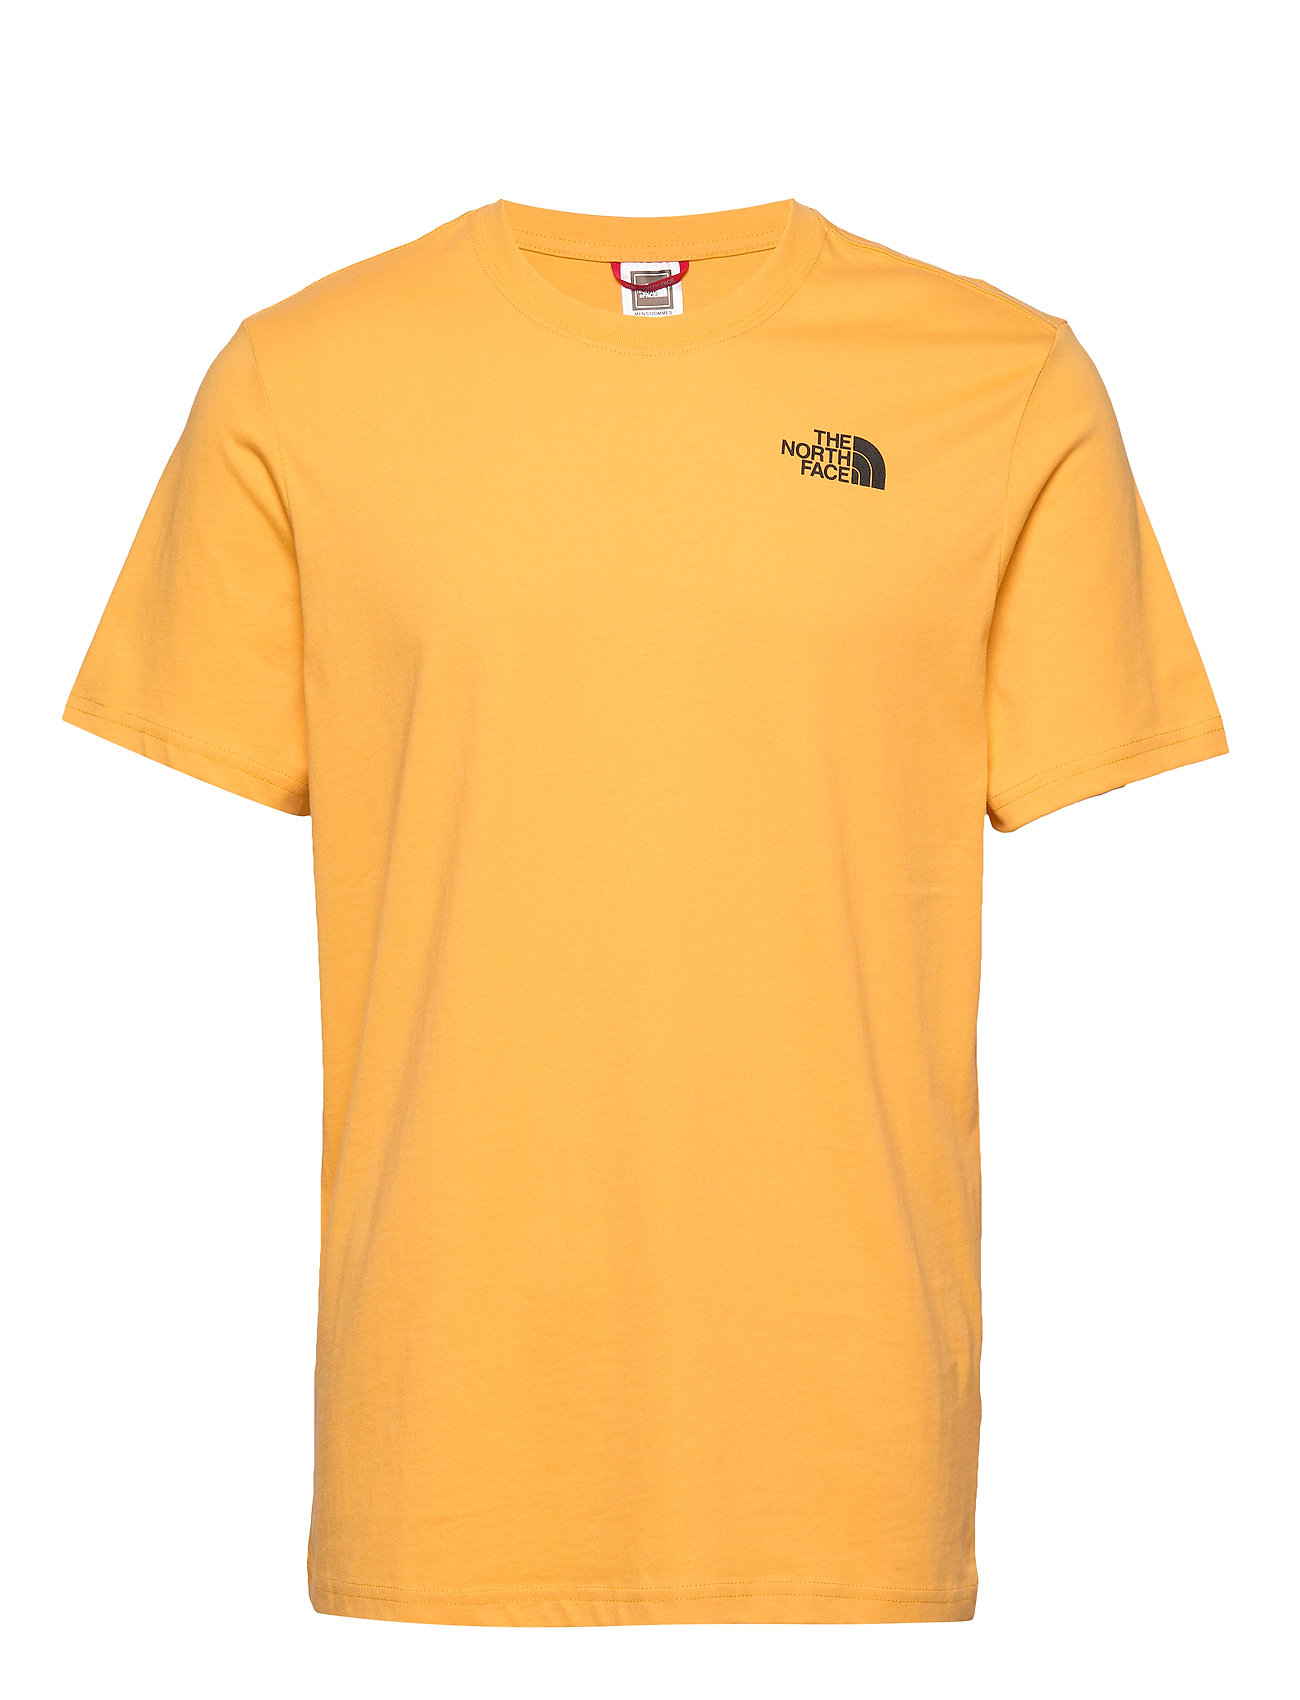 The North Face M S/S RED BOX TEE - TNFYLW/TNFBLACK